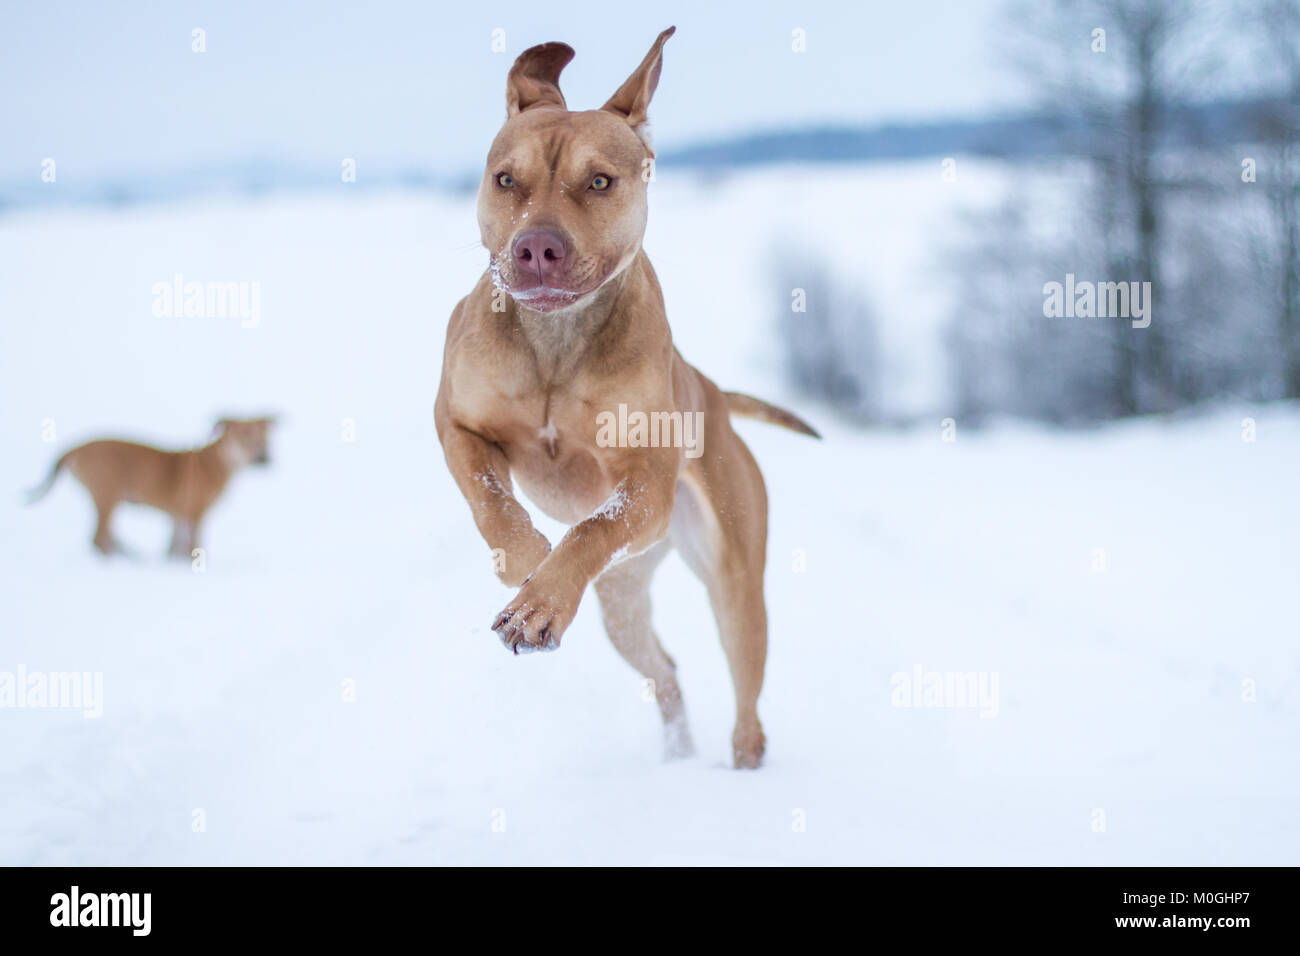 Working Pit Bulldog running in the snow - Stock Image